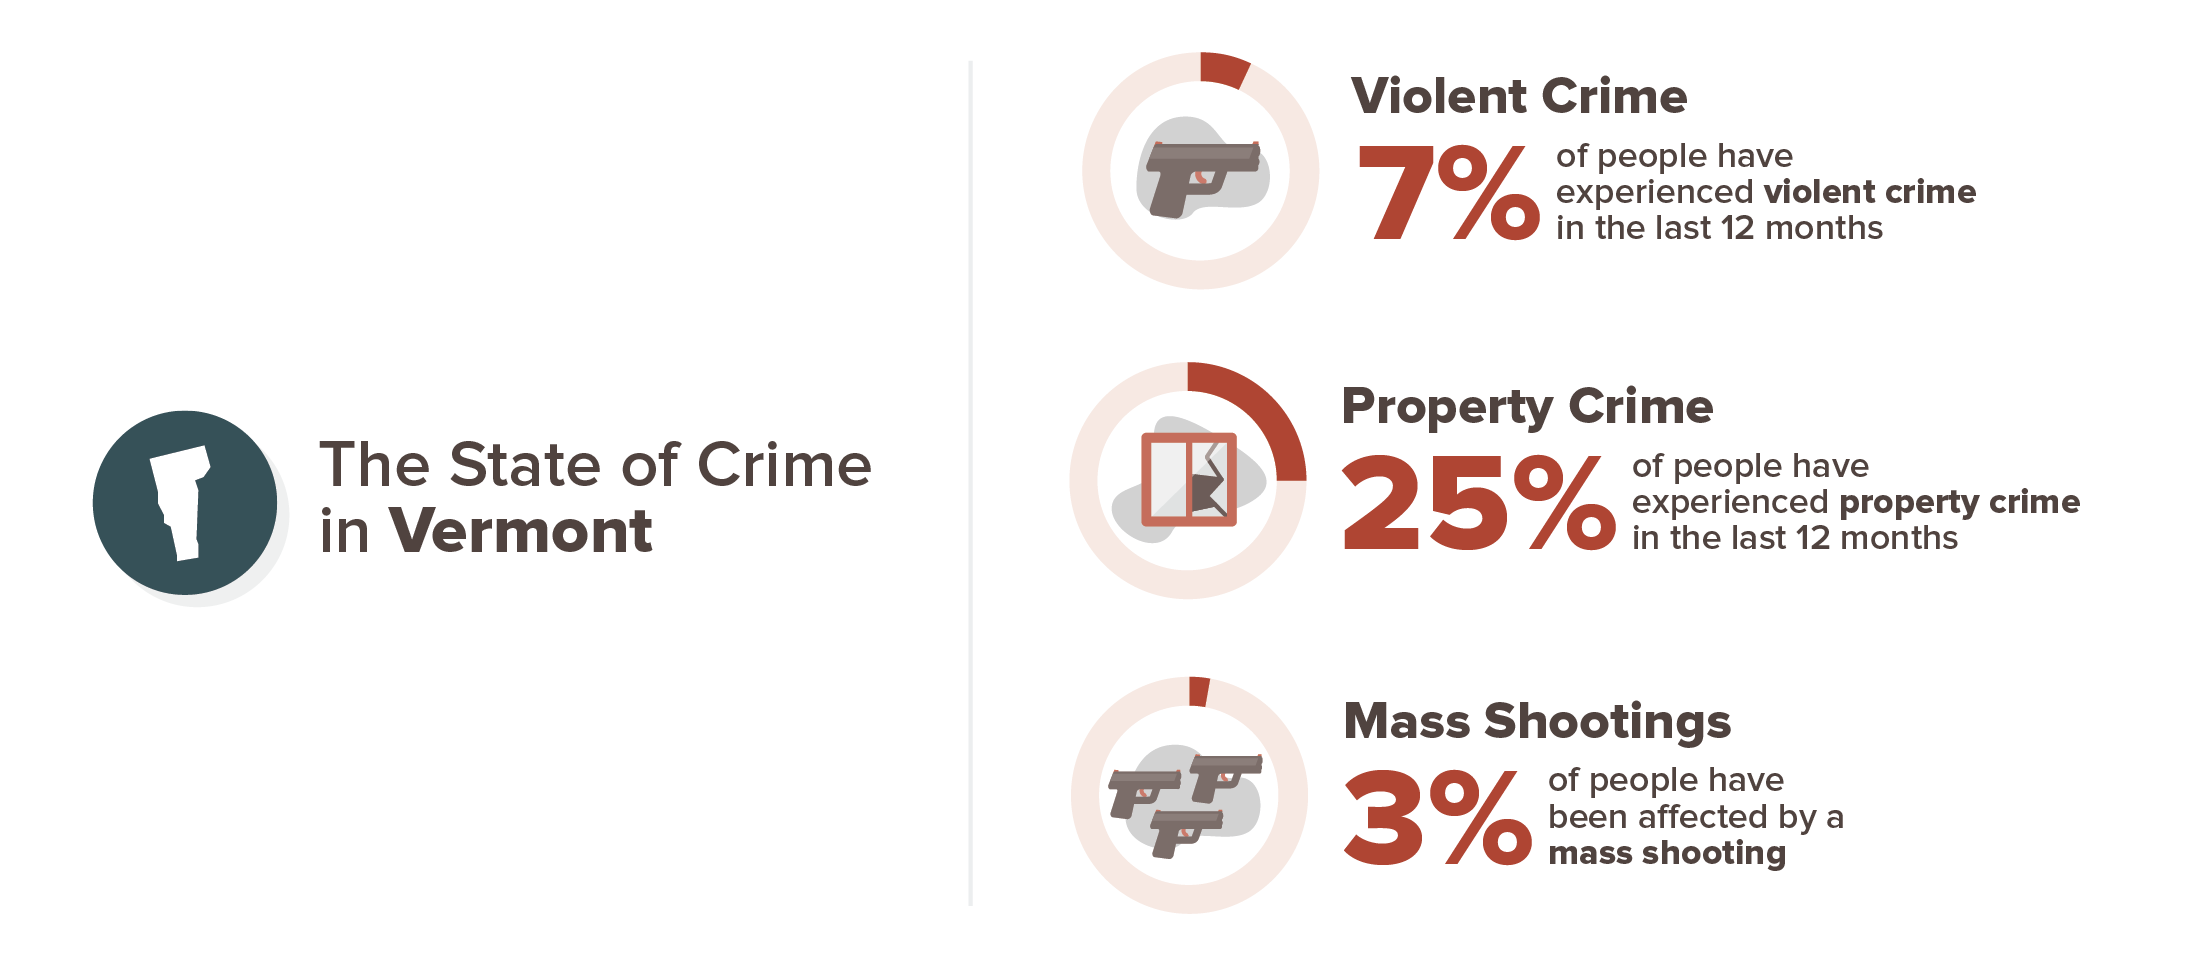 Vermont crime experience infographic